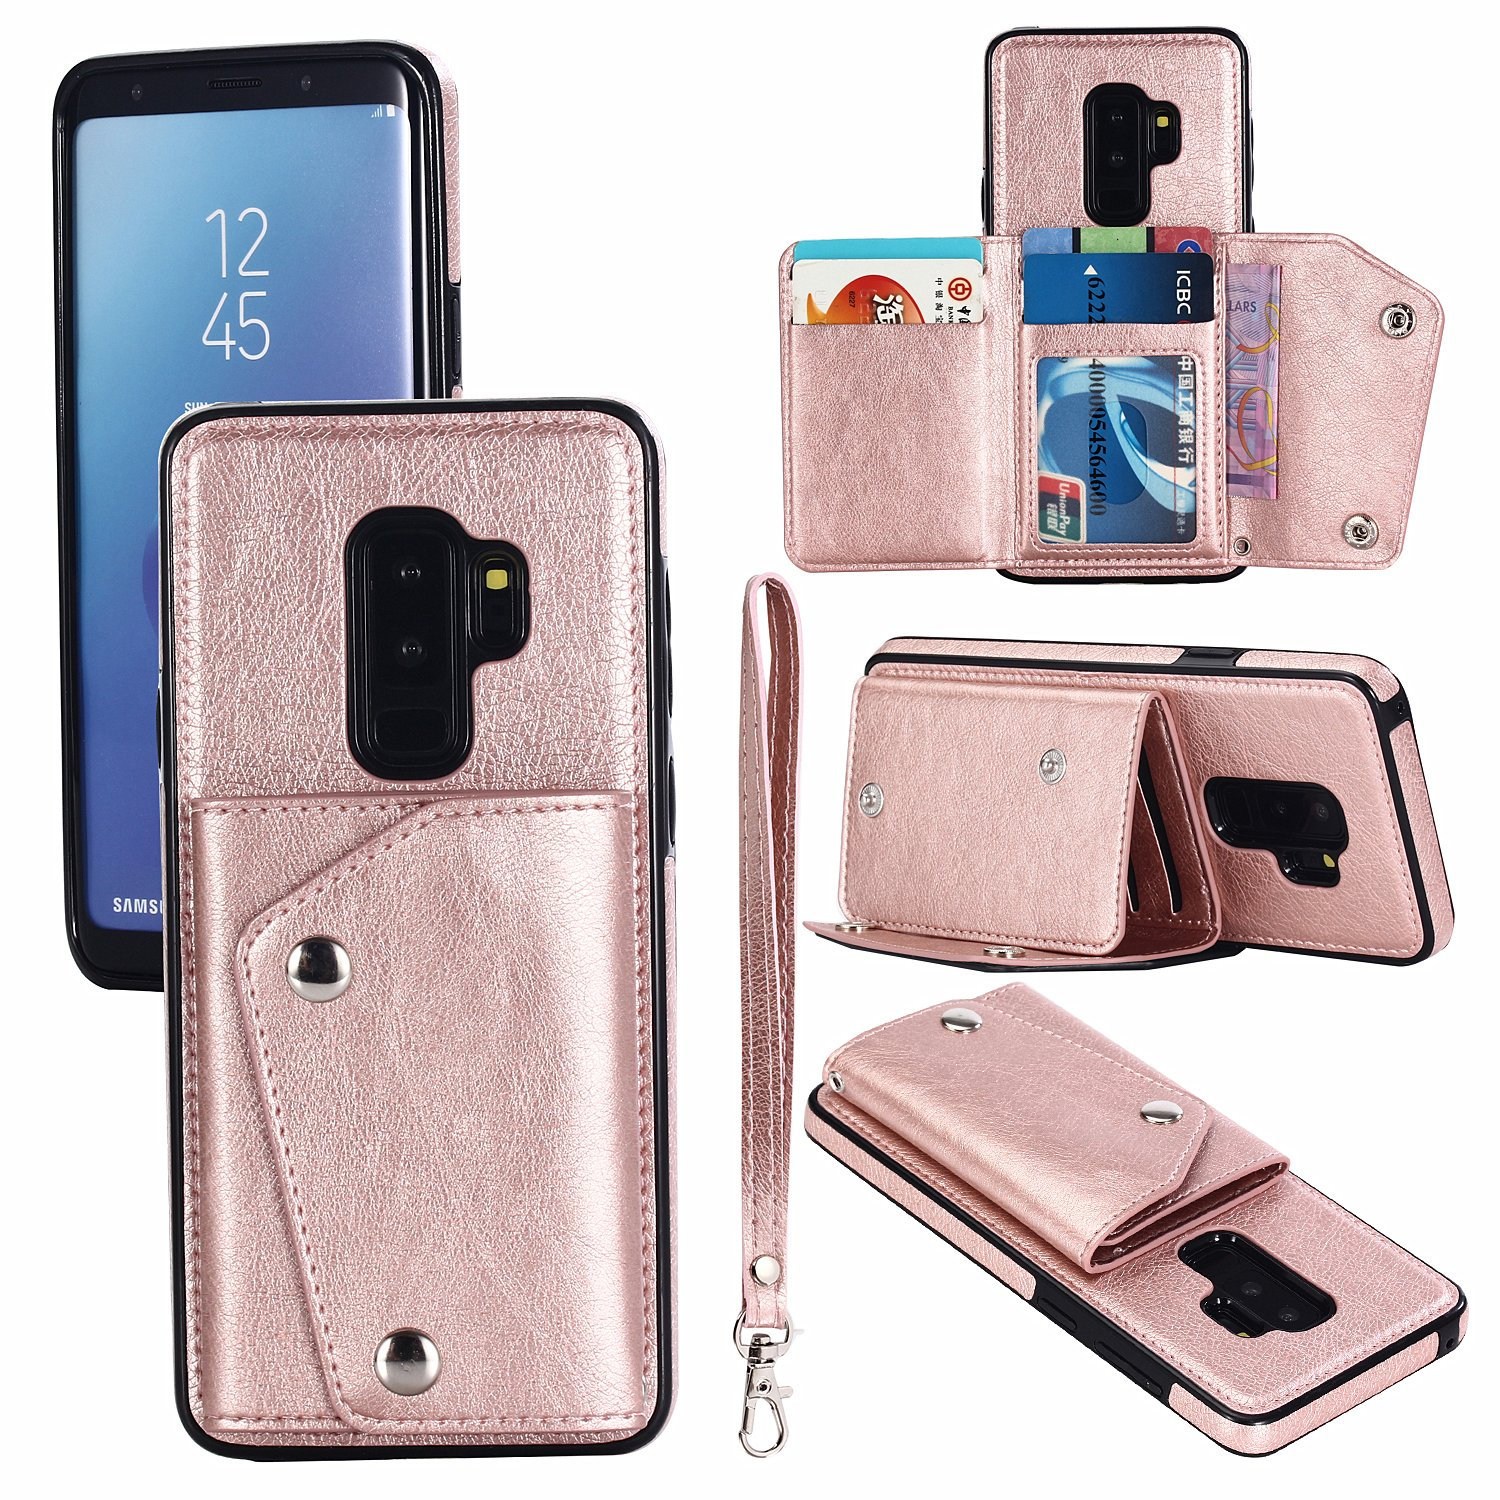 Gostyle Galaxy S9 Wallet Case,Samsung Galaxy S9 Case with Credit Card Slots,Fashion Multifunction Premium PU Leather Cover with Kickstand Cash Pocket Hand Strap Shockproof Cover,Rose Gold